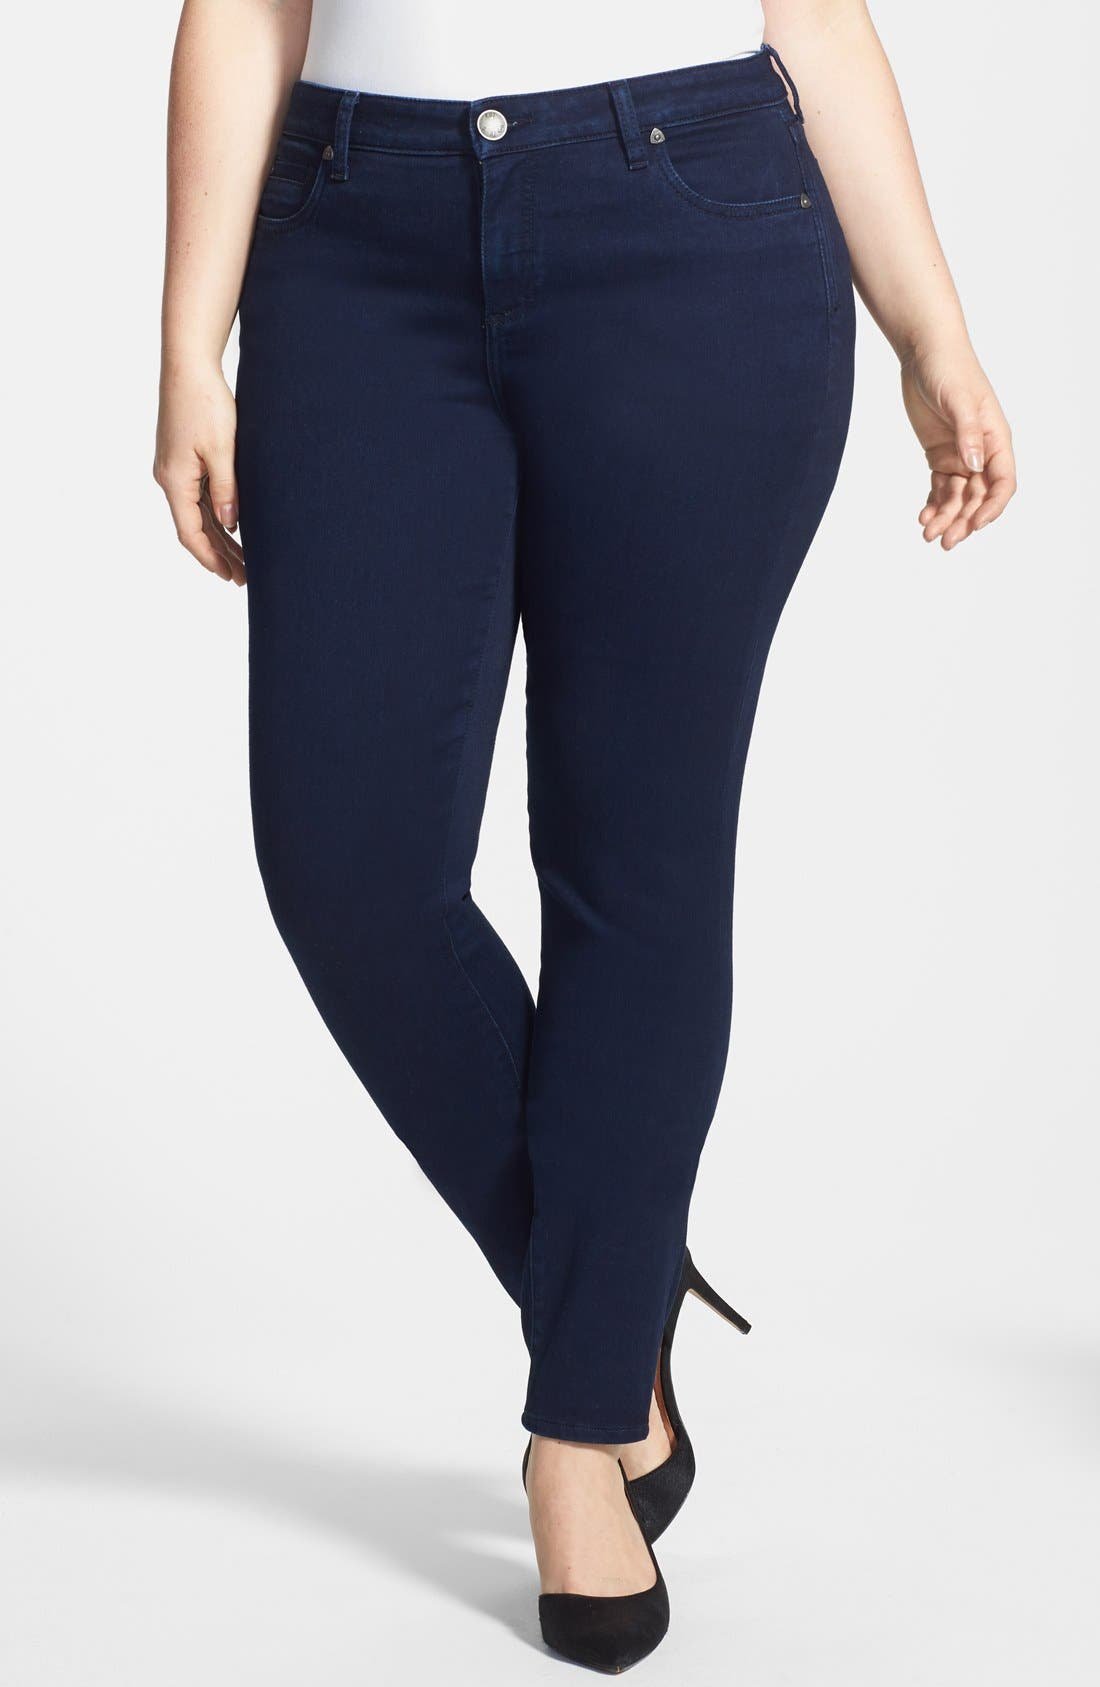 Alternate Image 1 Selected - KUT from the Kloth 'Diana' Stretch Skinny Jeans (Discrete) (Plus Size)